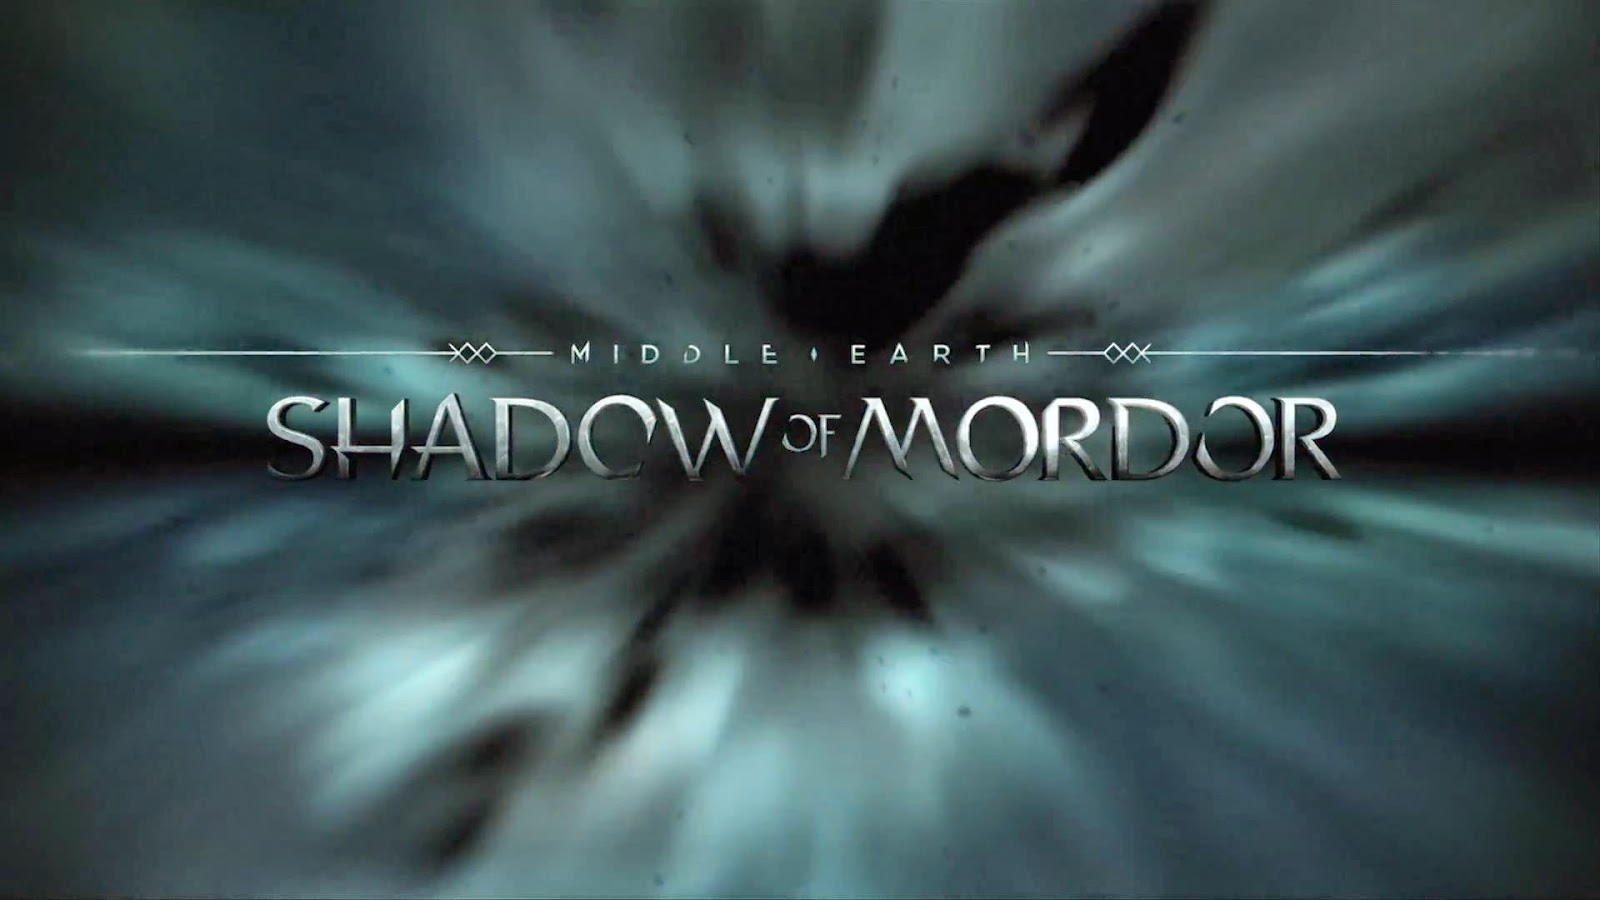 http://psgamespower.blogspot.com/2014/10/guia-psgames-power-middle-earth-shadow.html